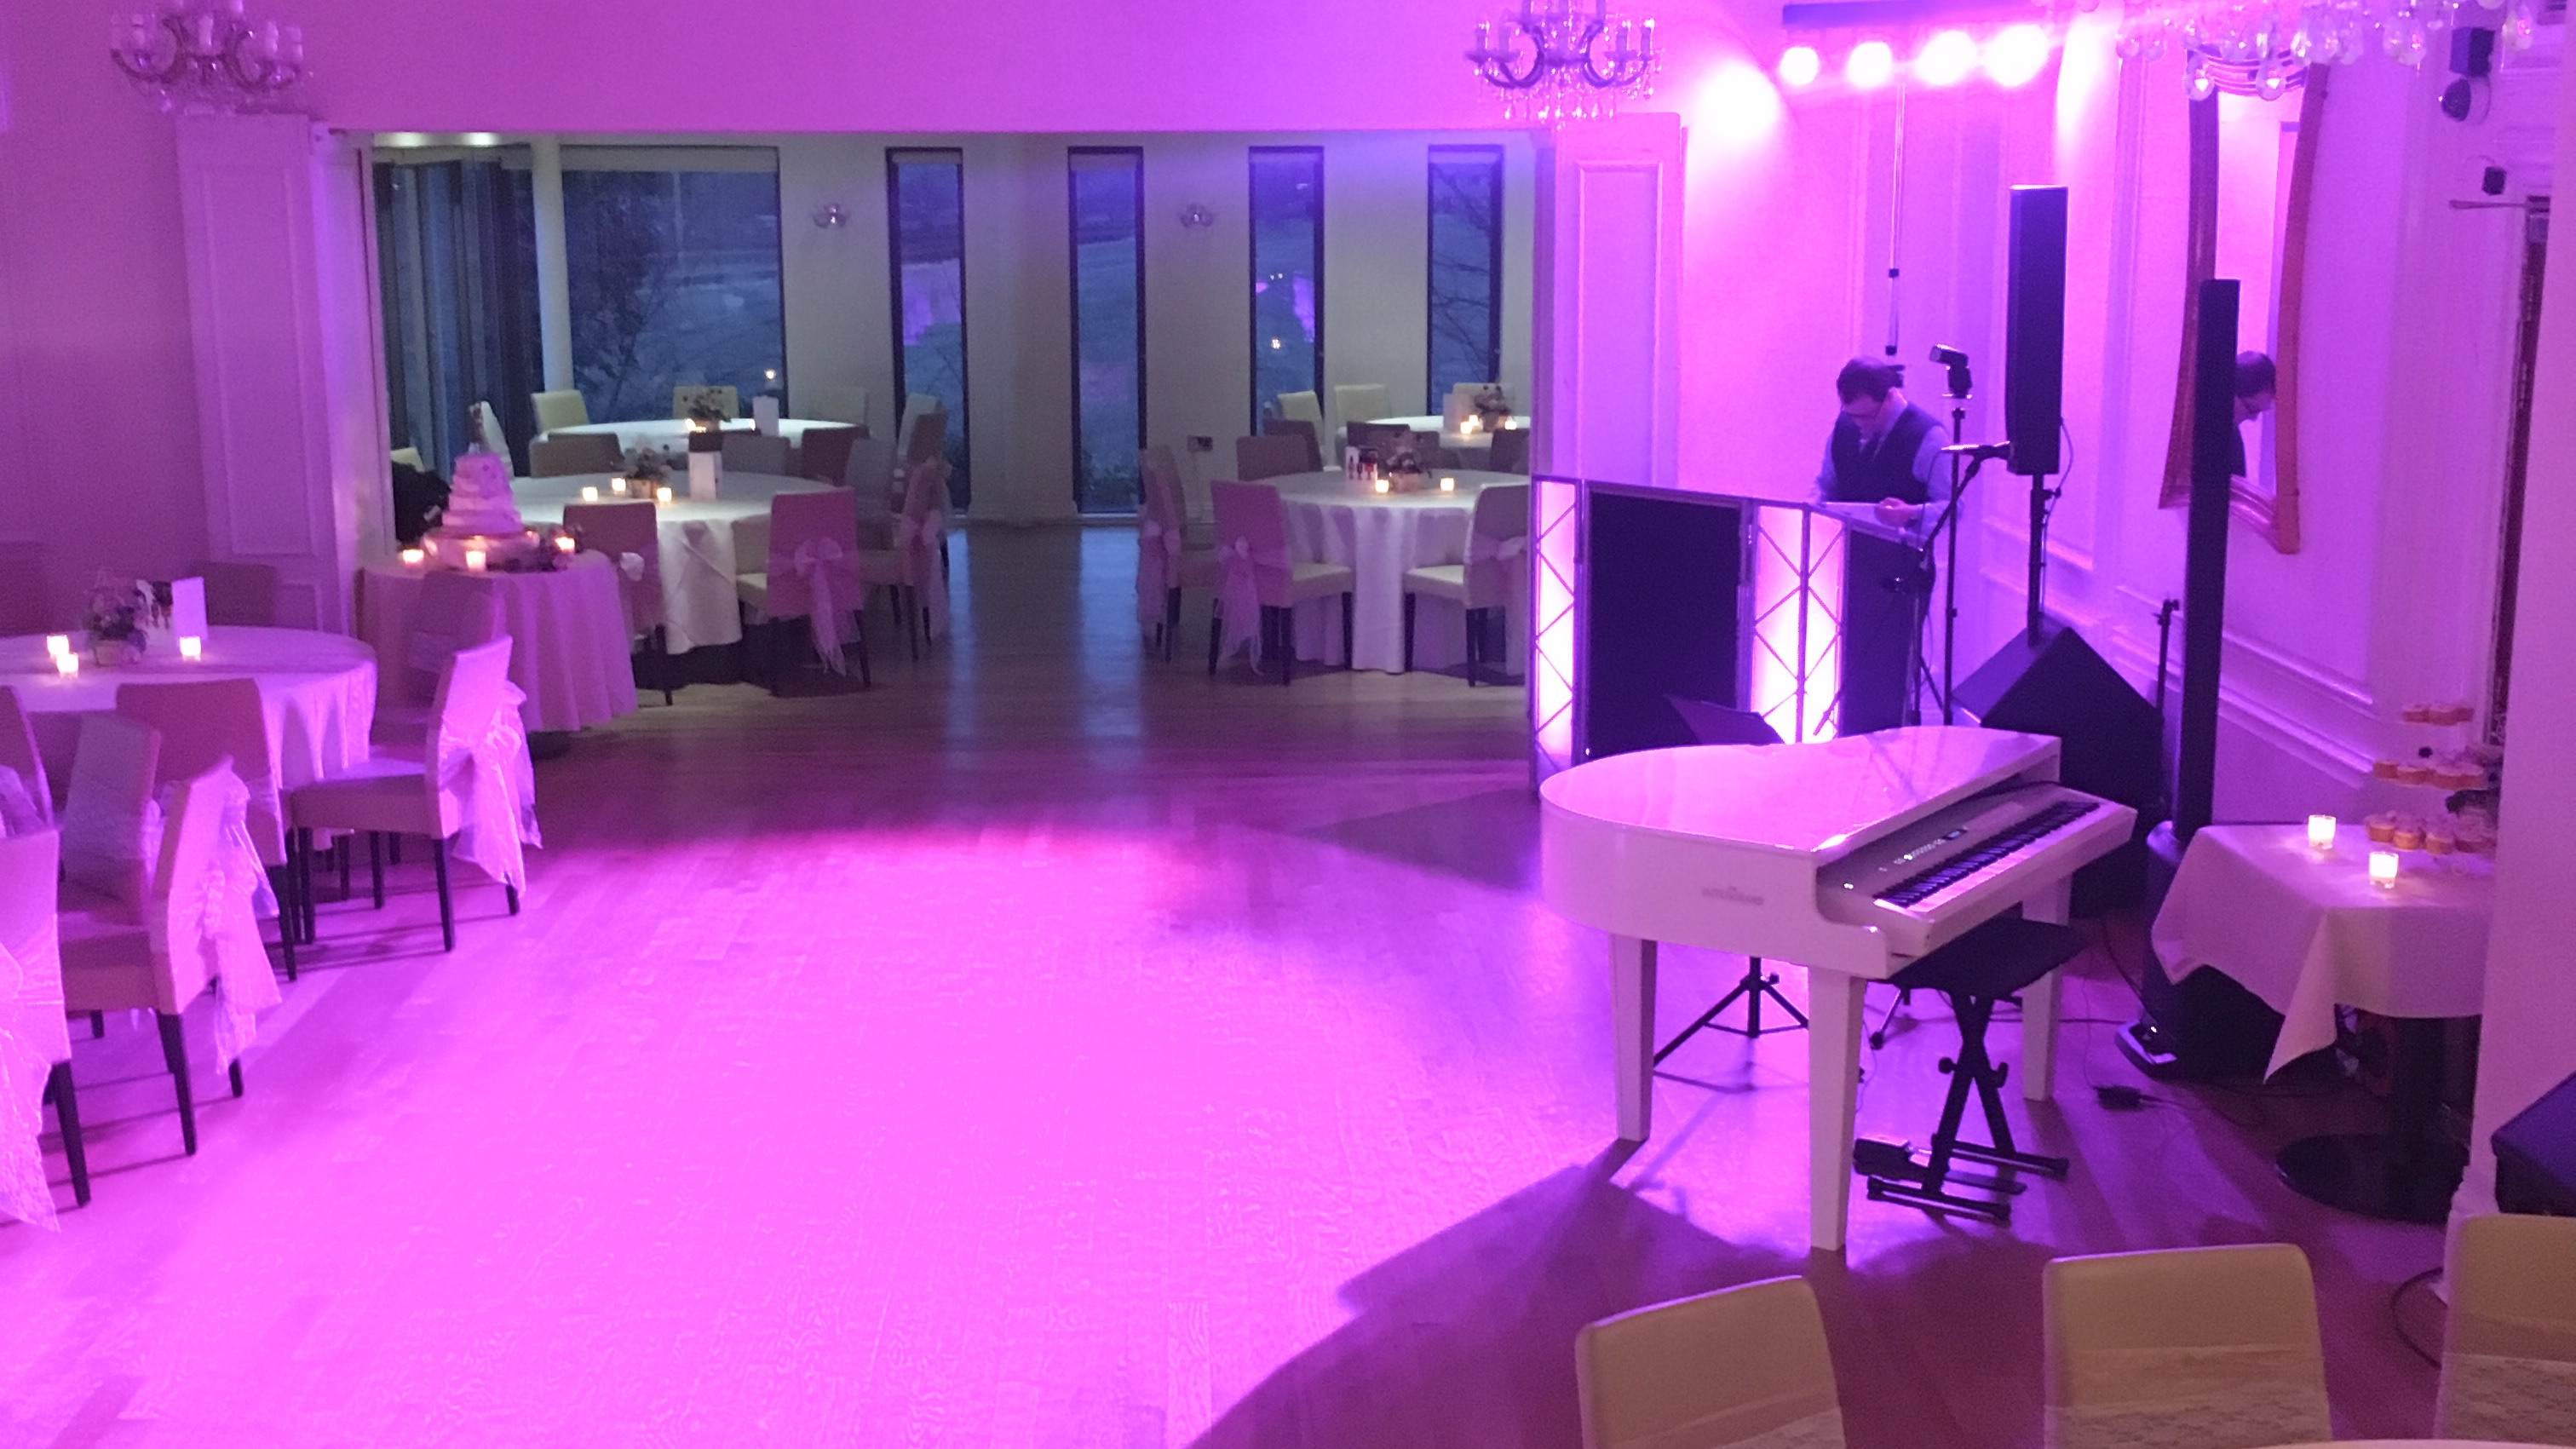 Evening entertainment on piano for West Tower